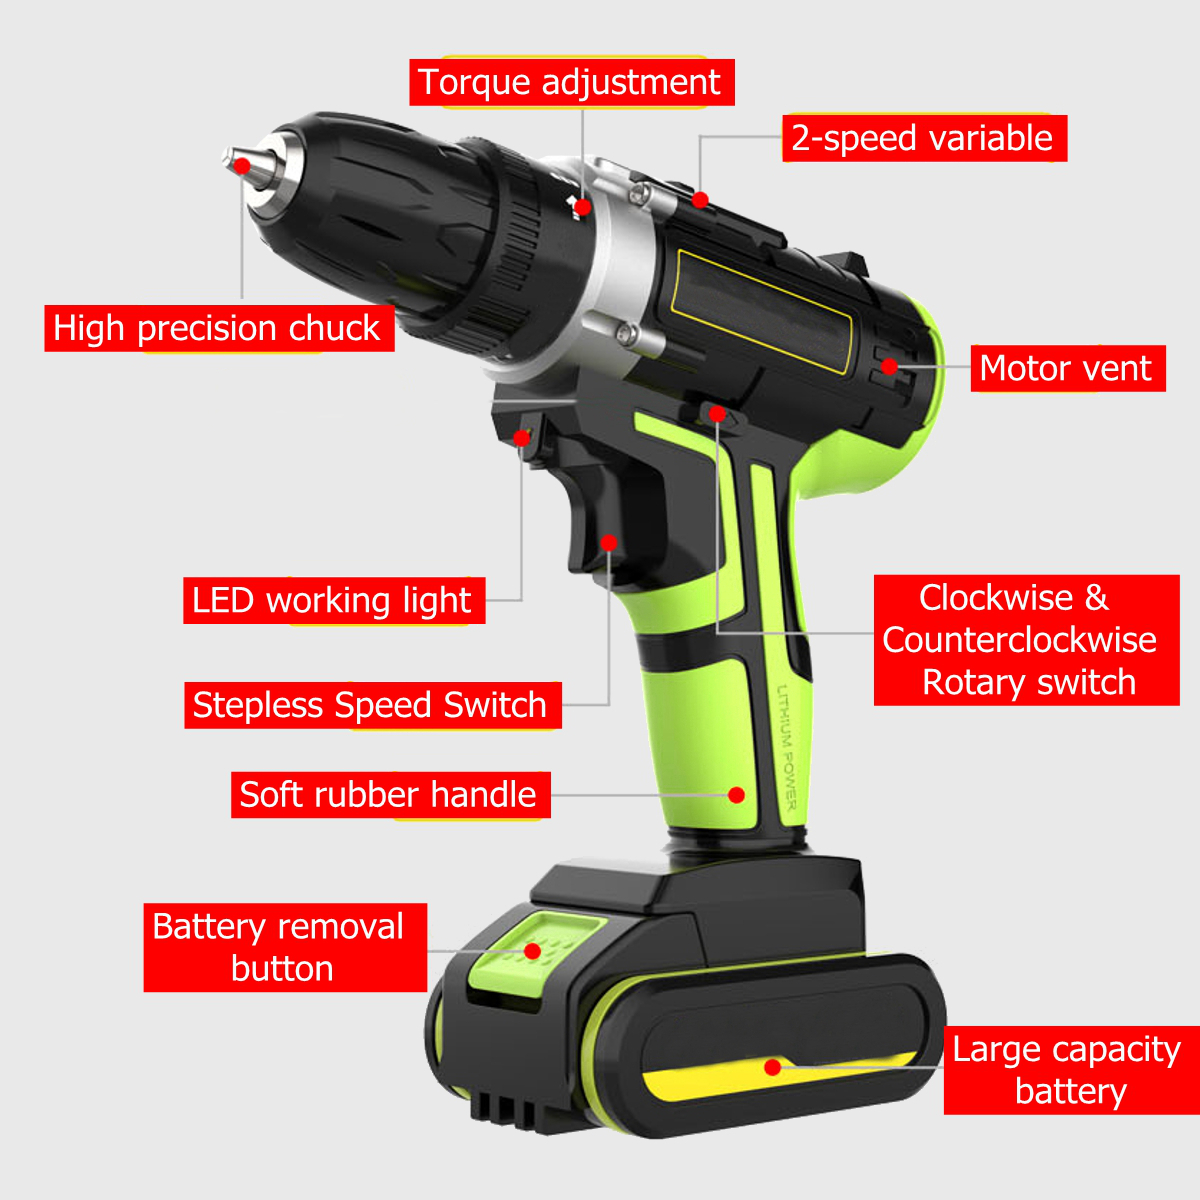 3 In 1 Hammer Drill 48V Cordless Drill Double Speed Power Drills LED lighting 1/2Pcs Large Capacity Battery 50Nm 25+1 Torque Electric Drill